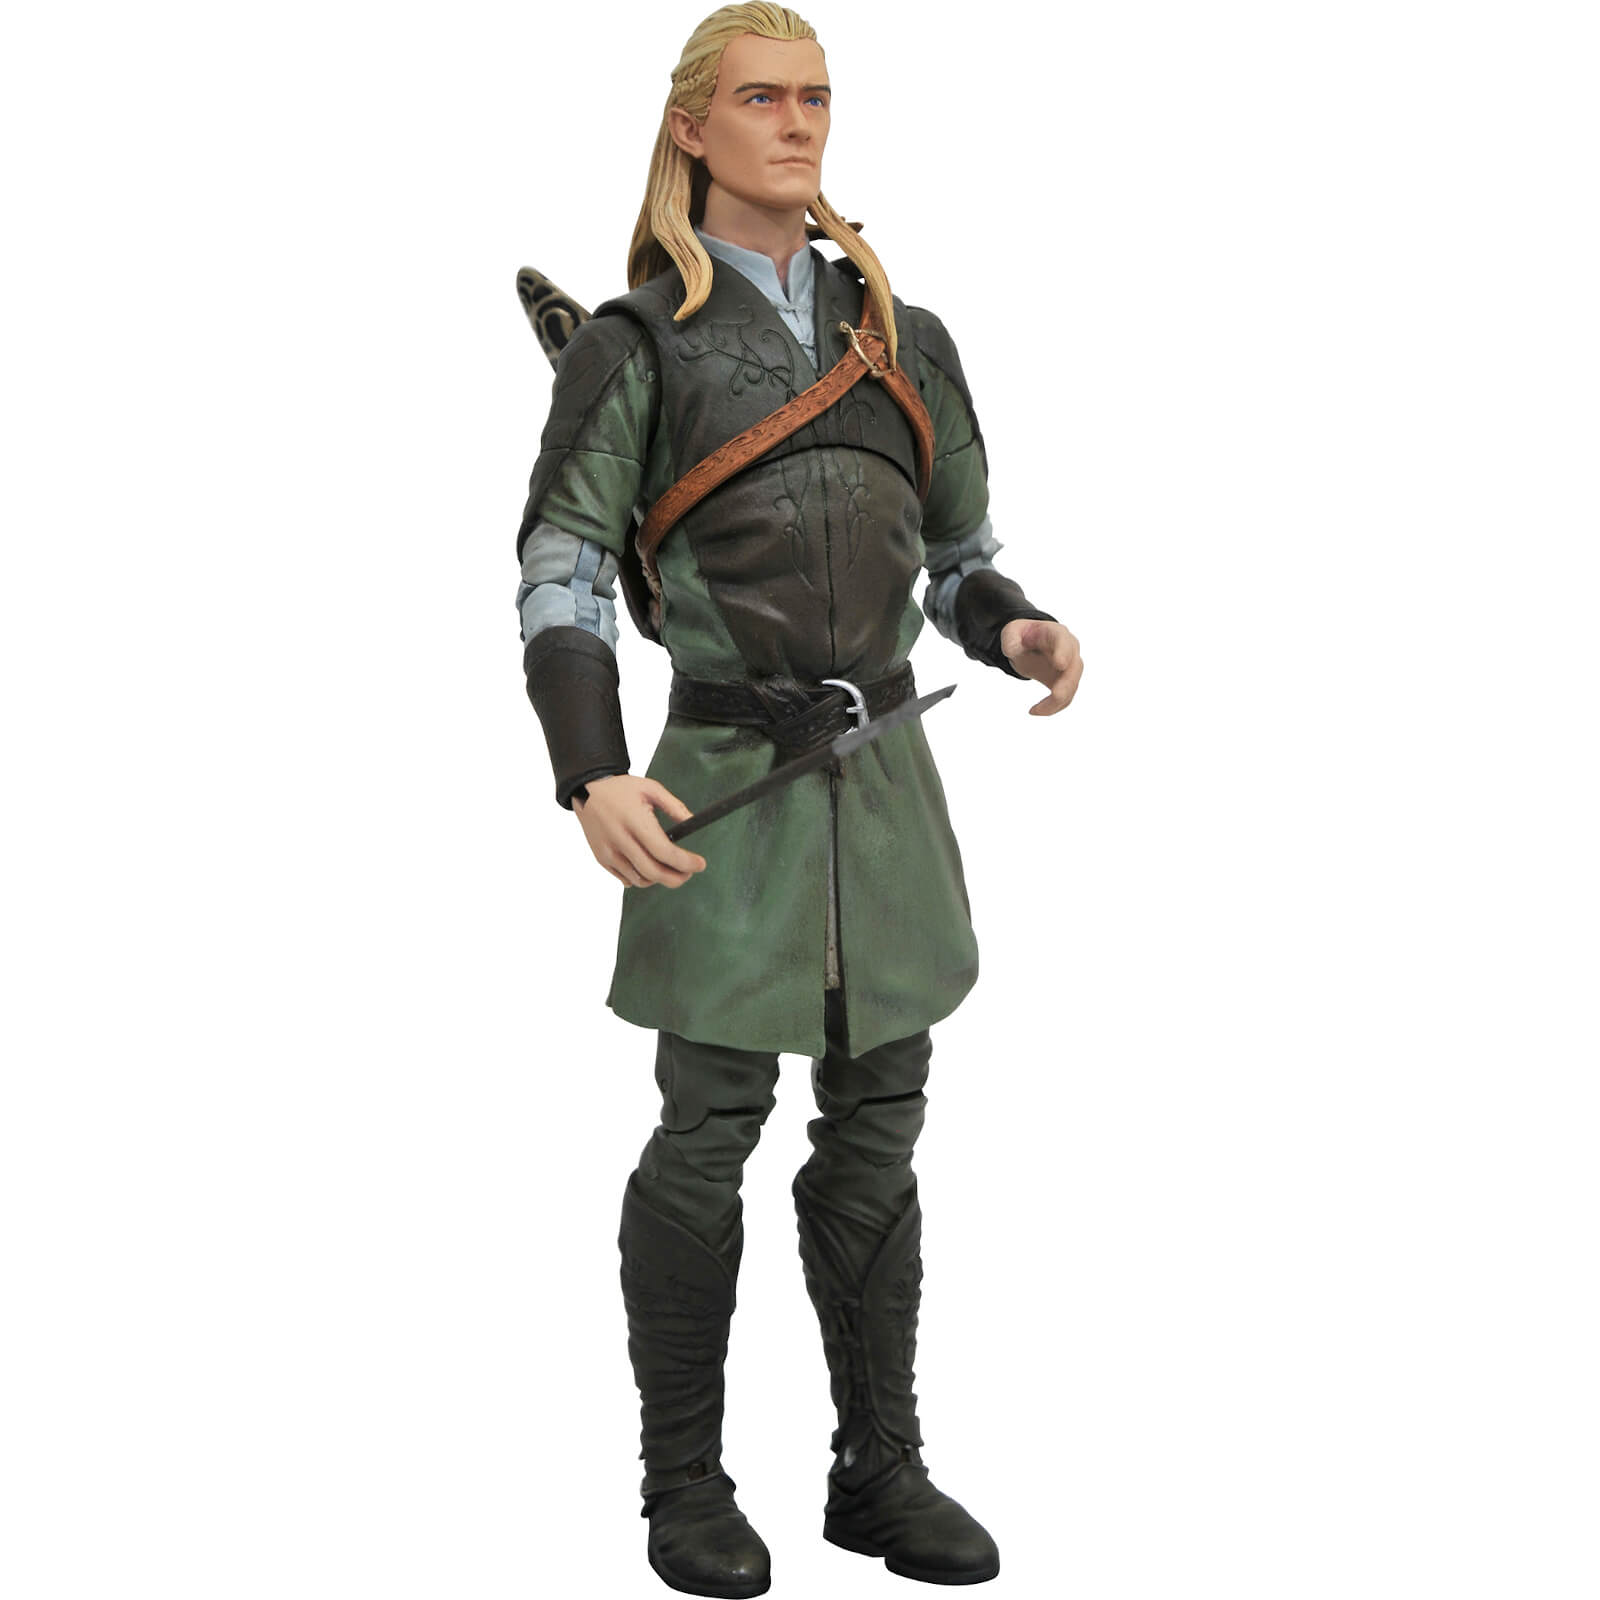 Lord of the Rings Diamond Select Series 1 7-Inch Action Figures Legolas